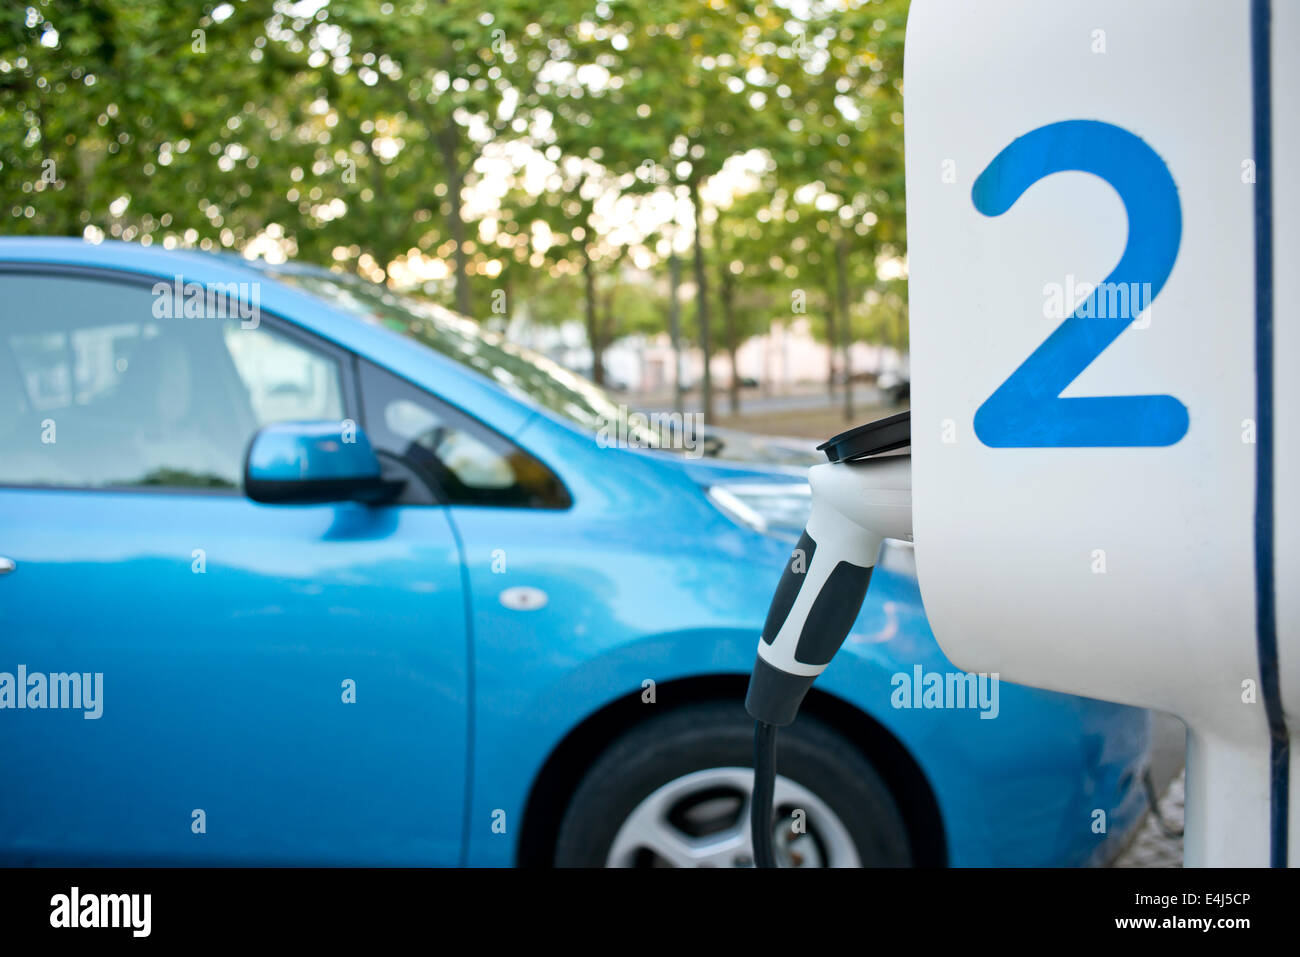 Electric car being recharged on a service station, in the street - Stock Image